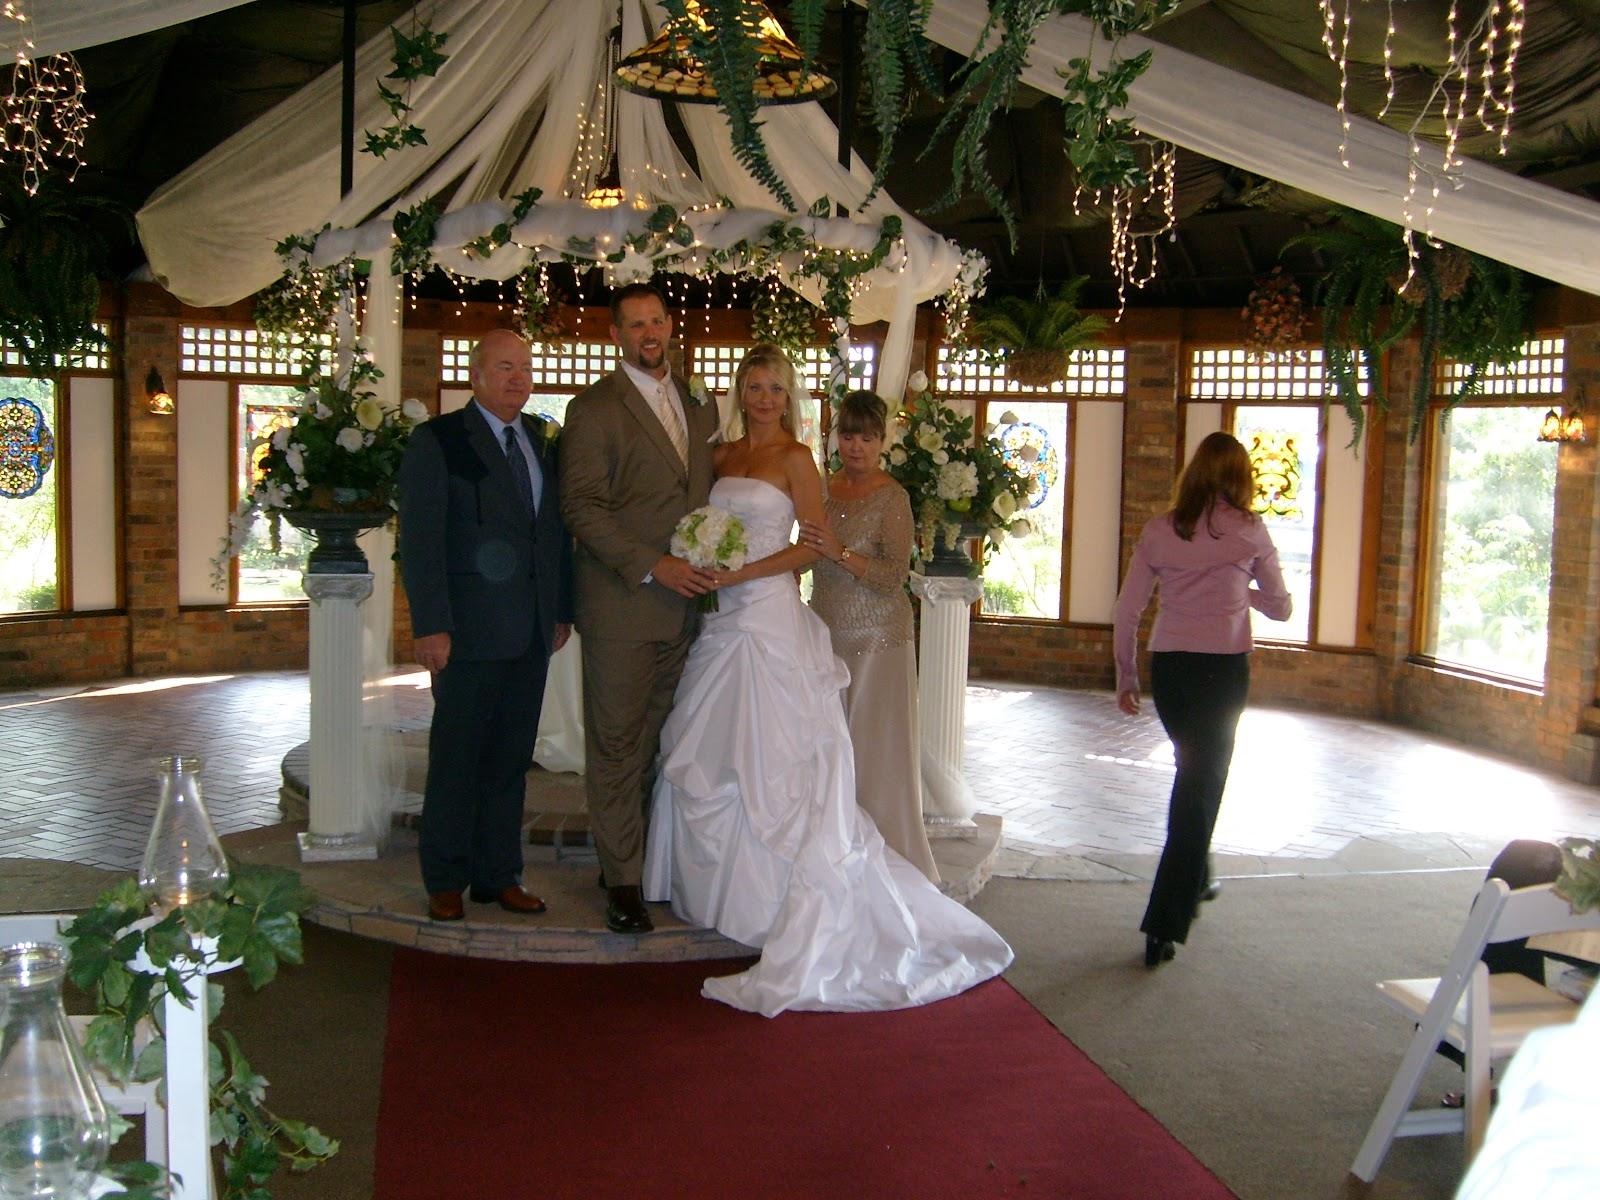 Beths Wedding - S7300165.JPG